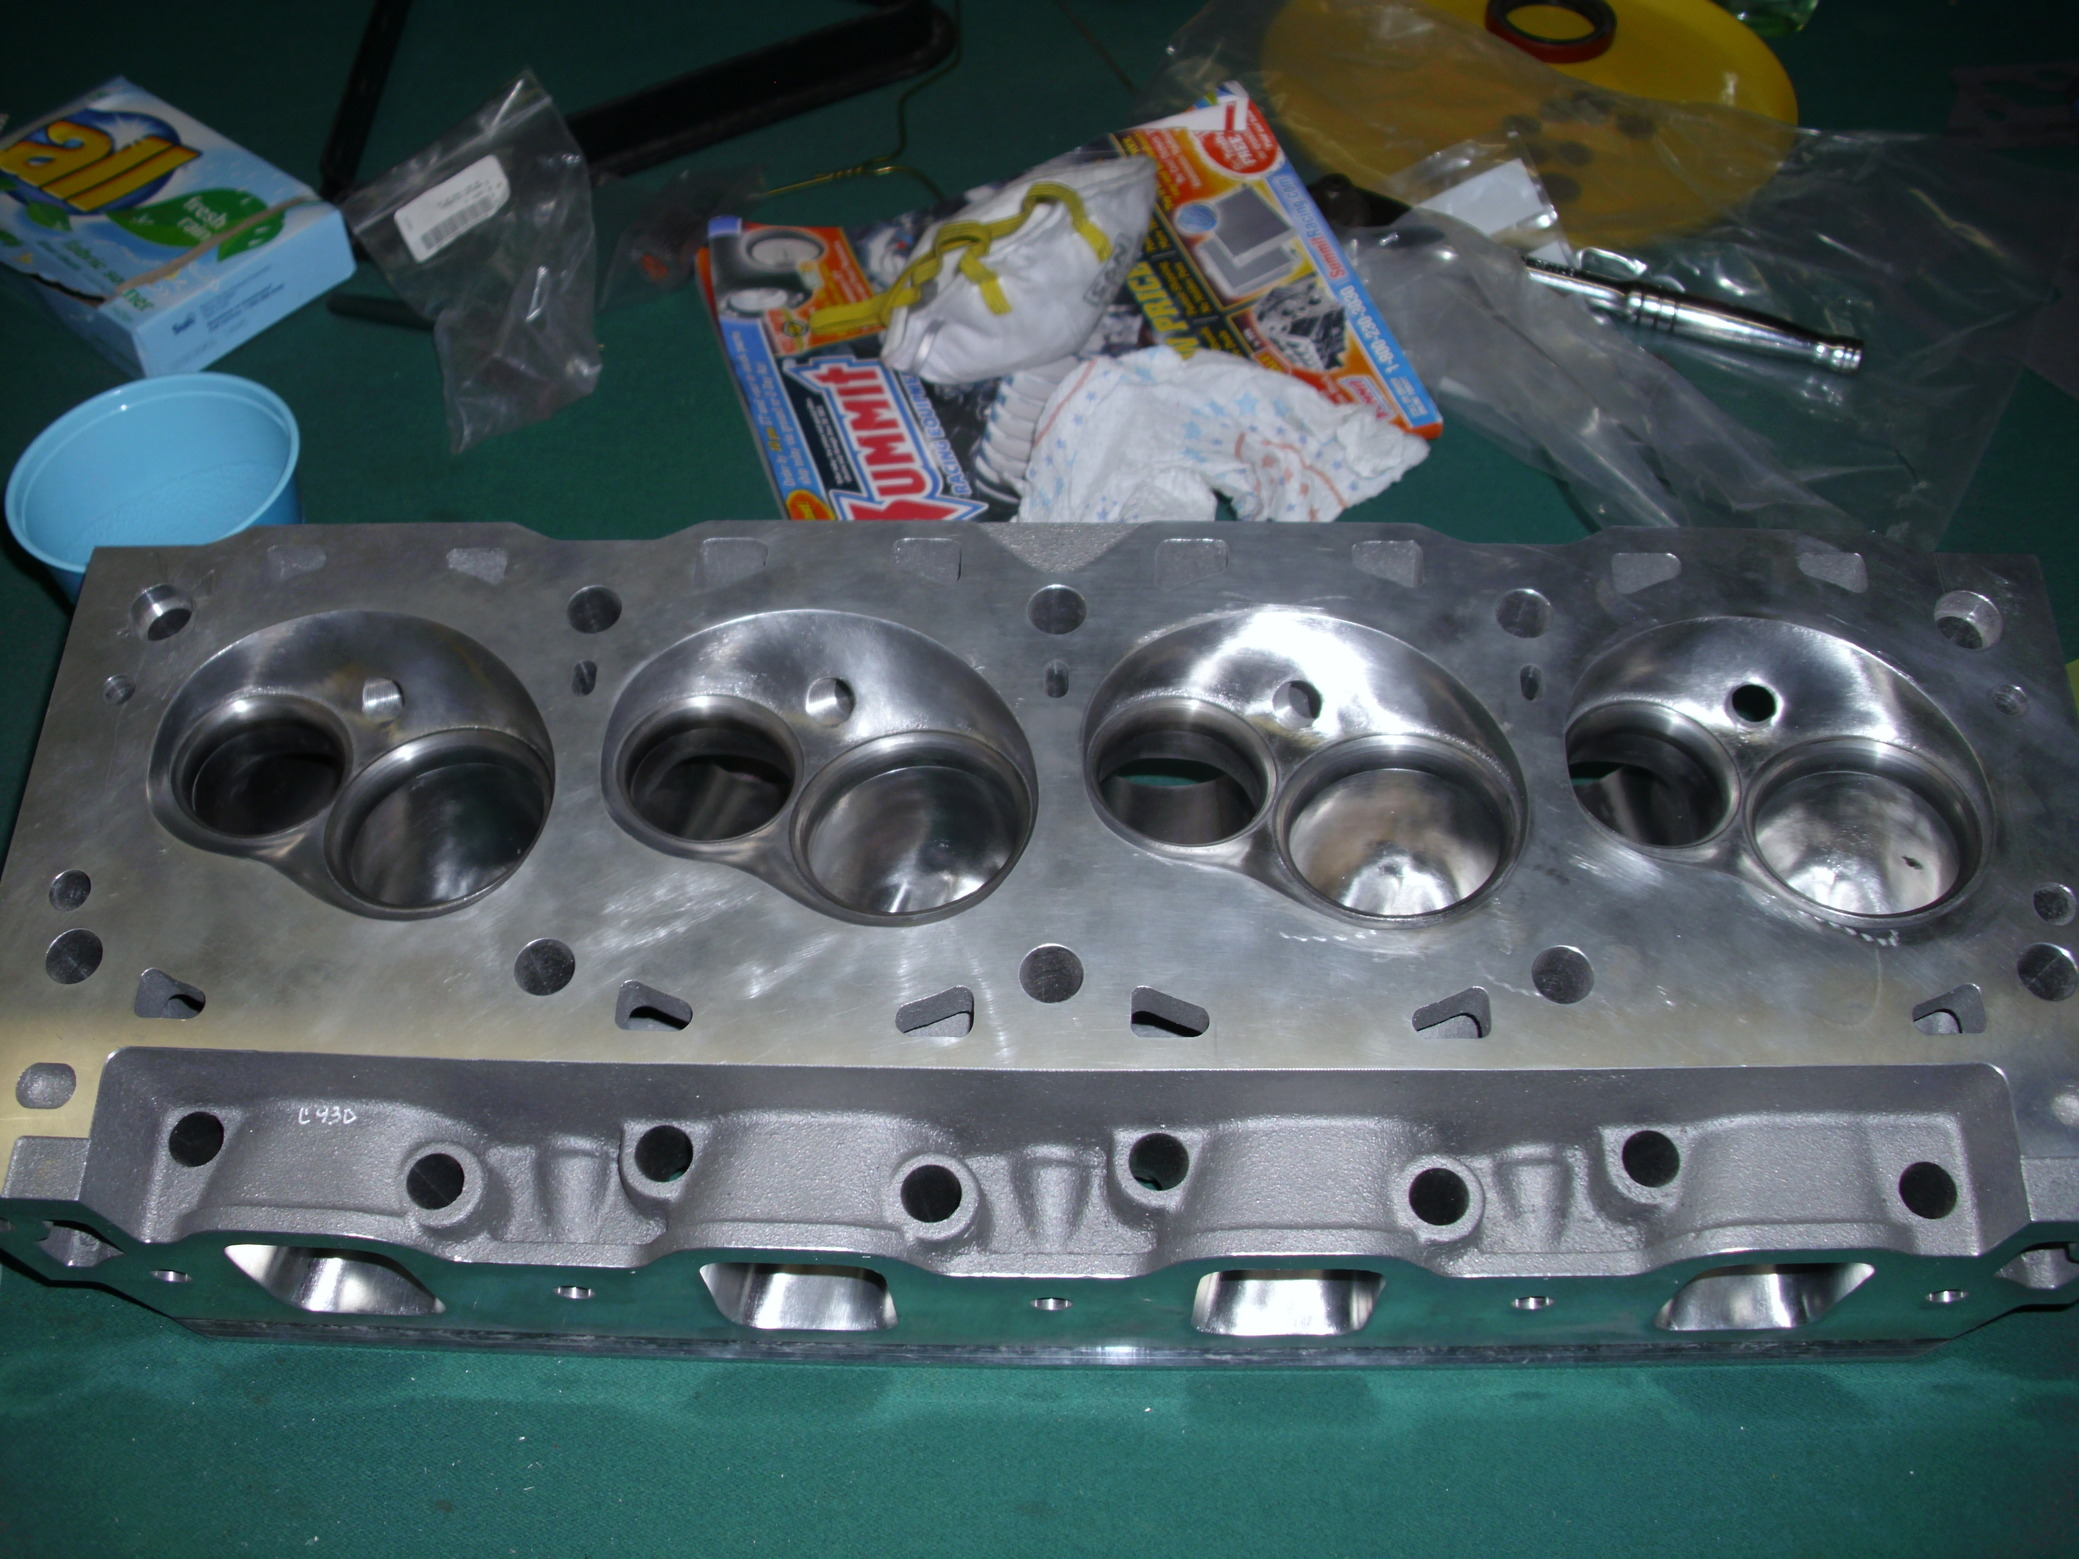 580ci a460 head & a 460 block 0001183